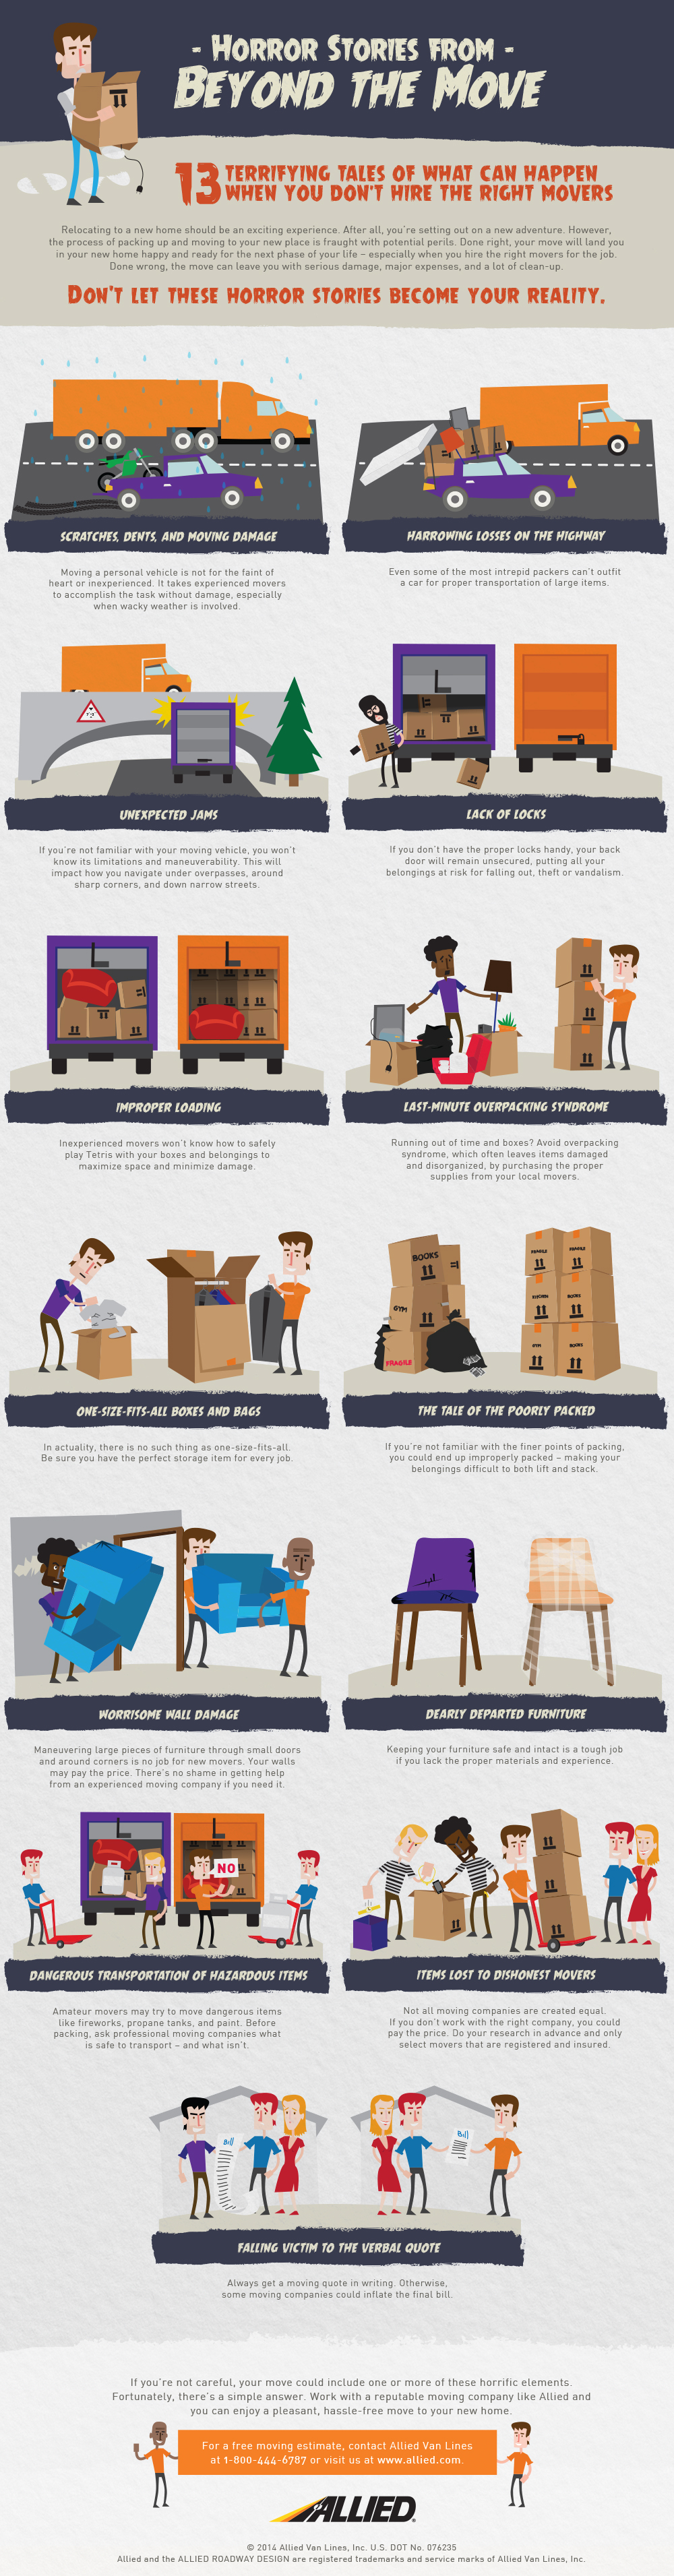 hire-the-right-movers-infographic